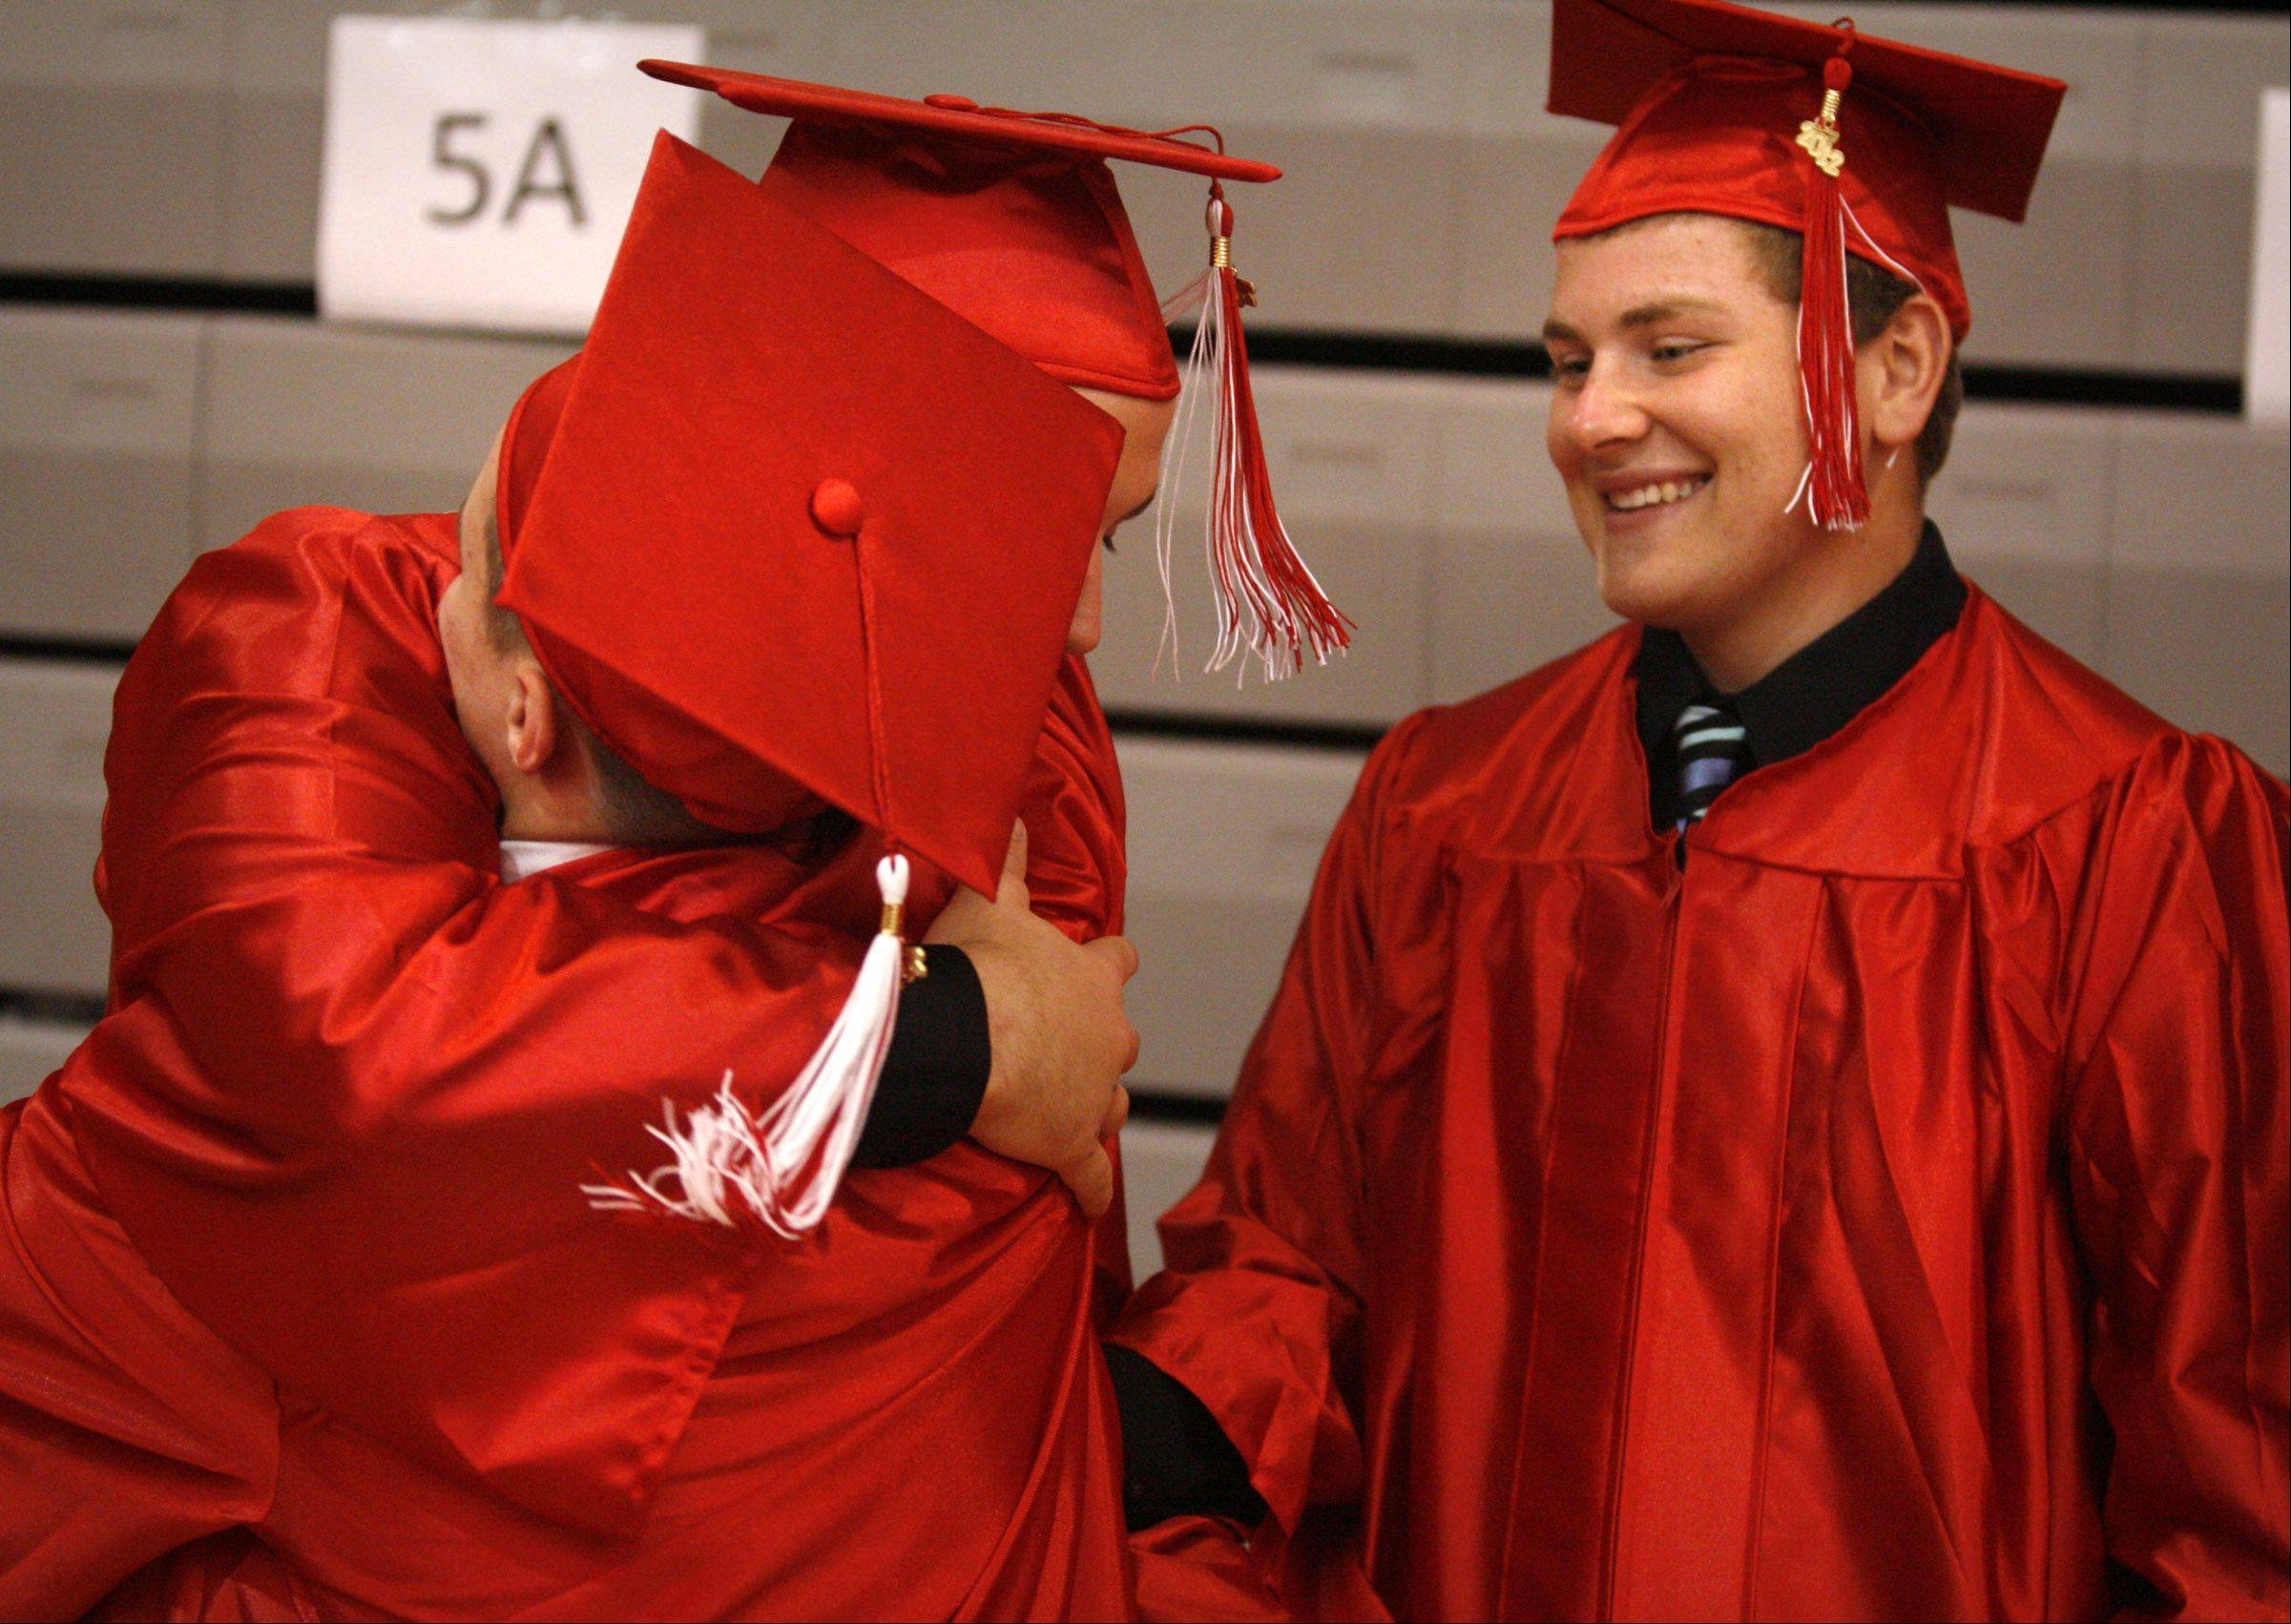 Grant High School's Kole Harvey gets a hug from Benjamin Soumer, after hugging graduating classmate Anthony DiCosola, right, at the school's graduation on Saturday, June 2 in Fox Lake.